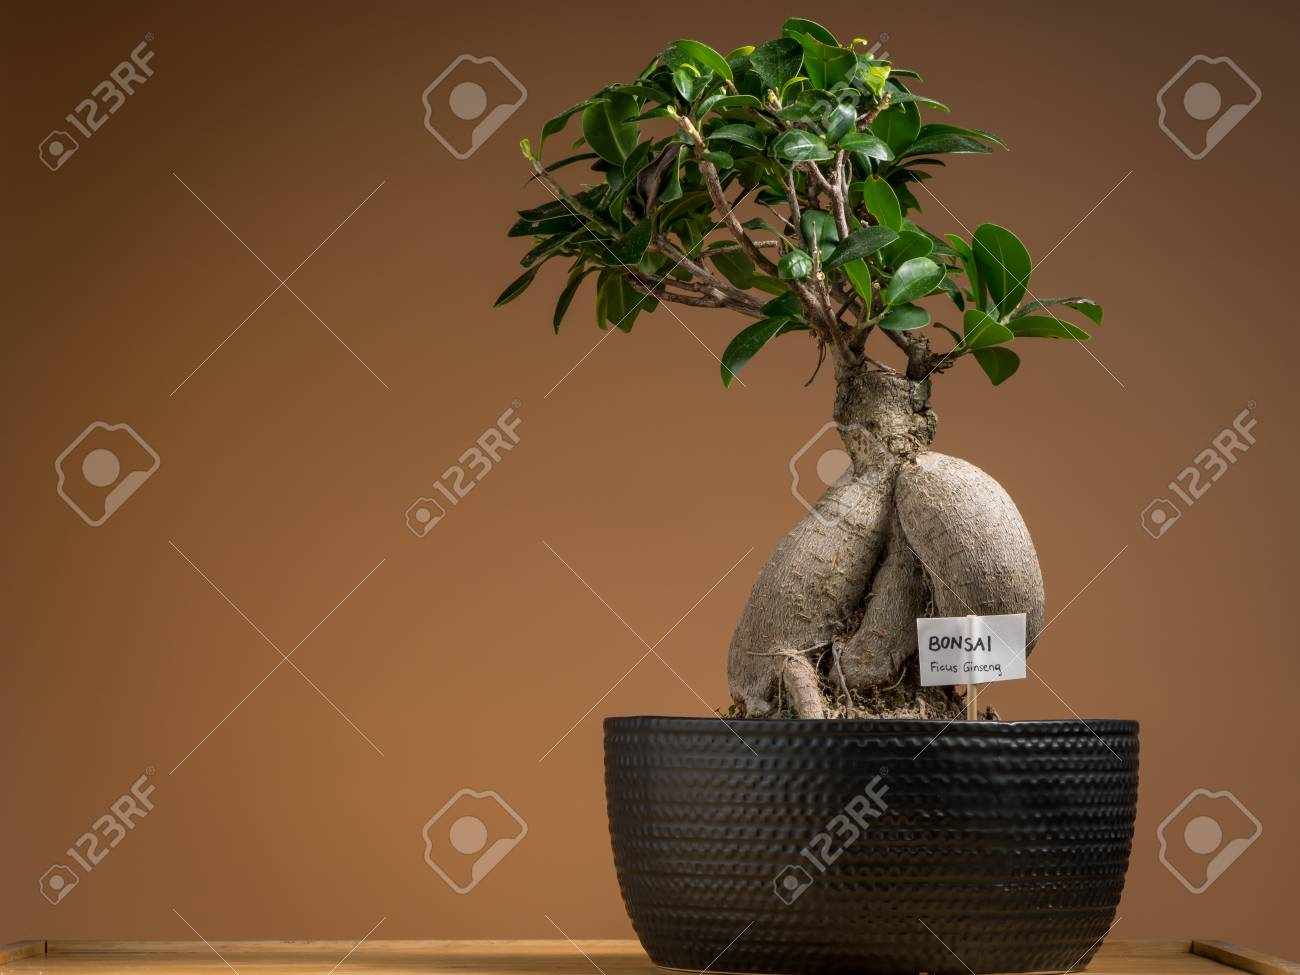 A Small Bonsai Ficus Tree Ficus Ginseng Planted In A Black Stock